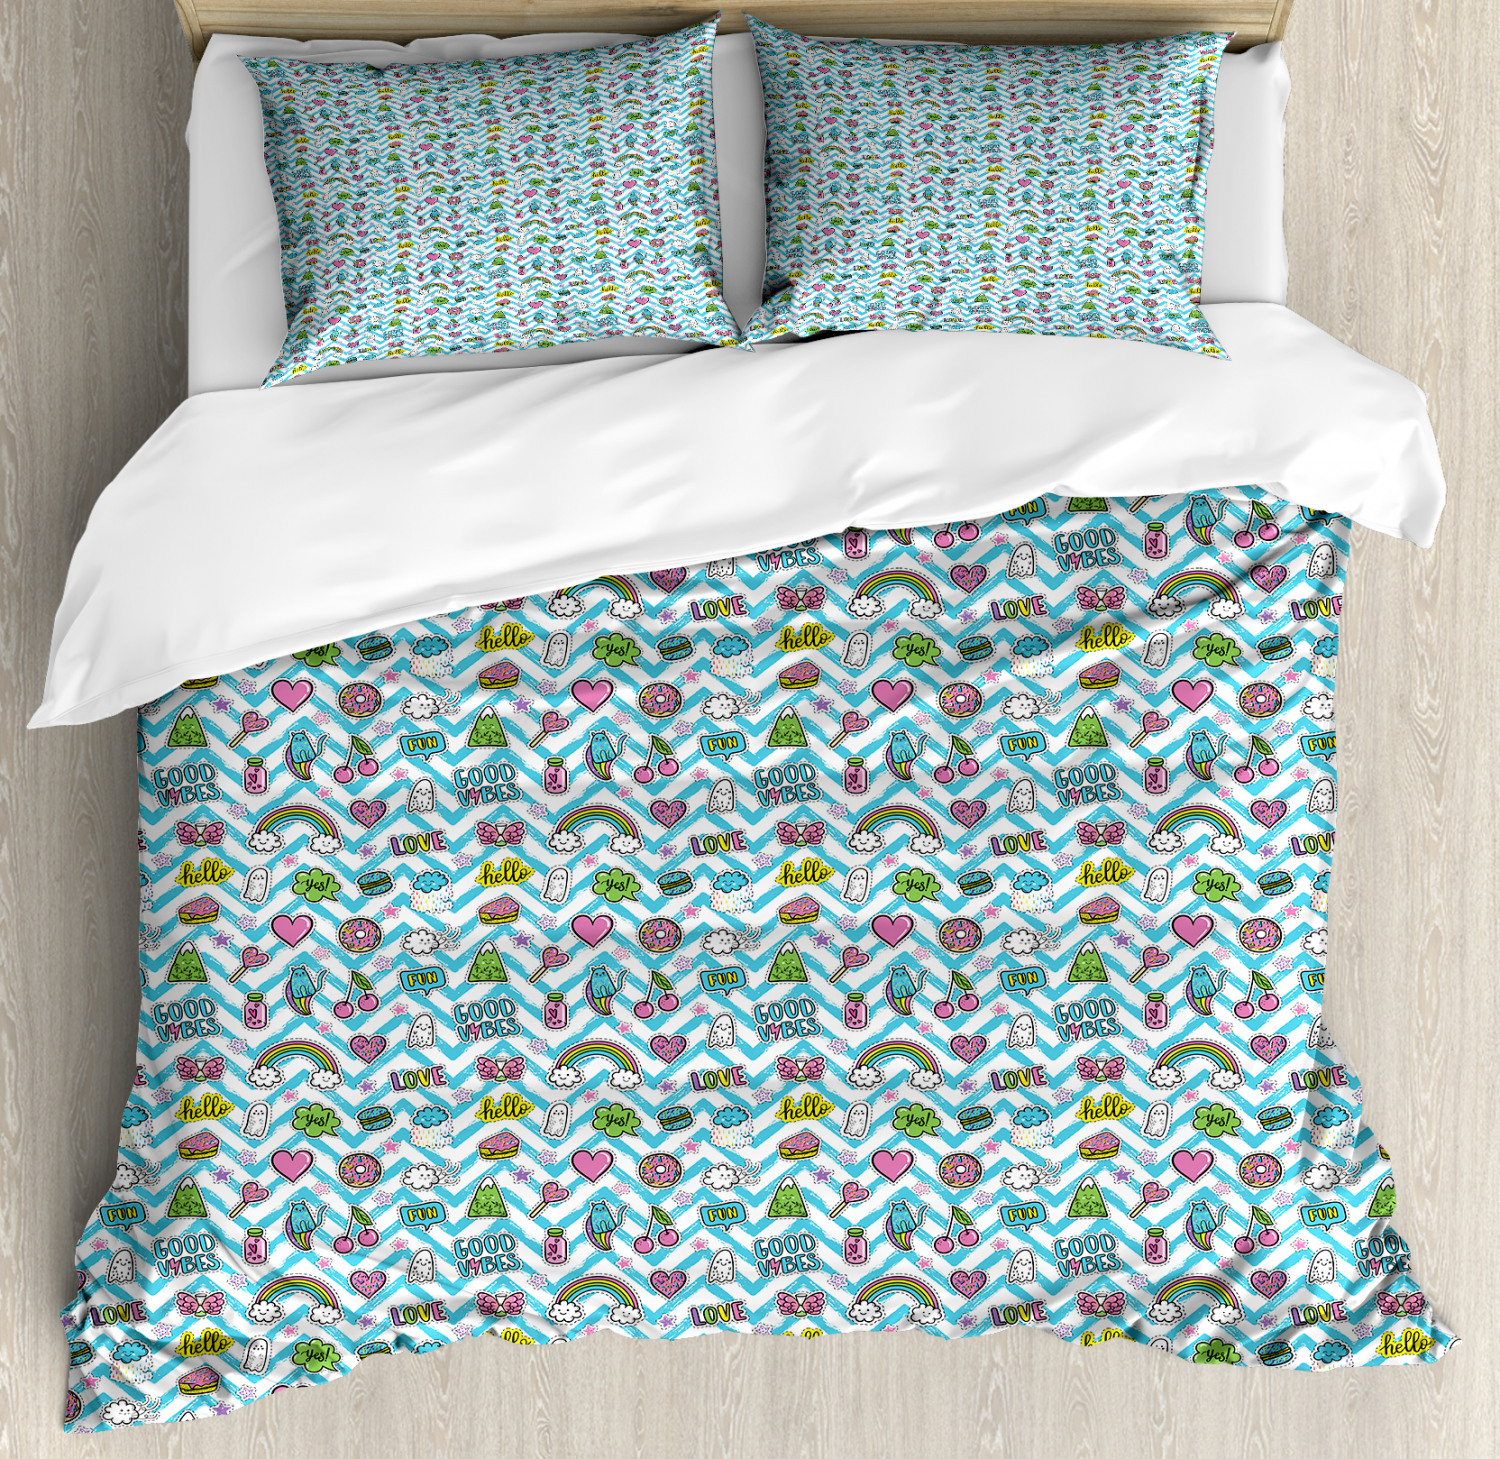 Good Vibes Duvet Cover Set with Pillow Shams Humorous Doodle Cute Print